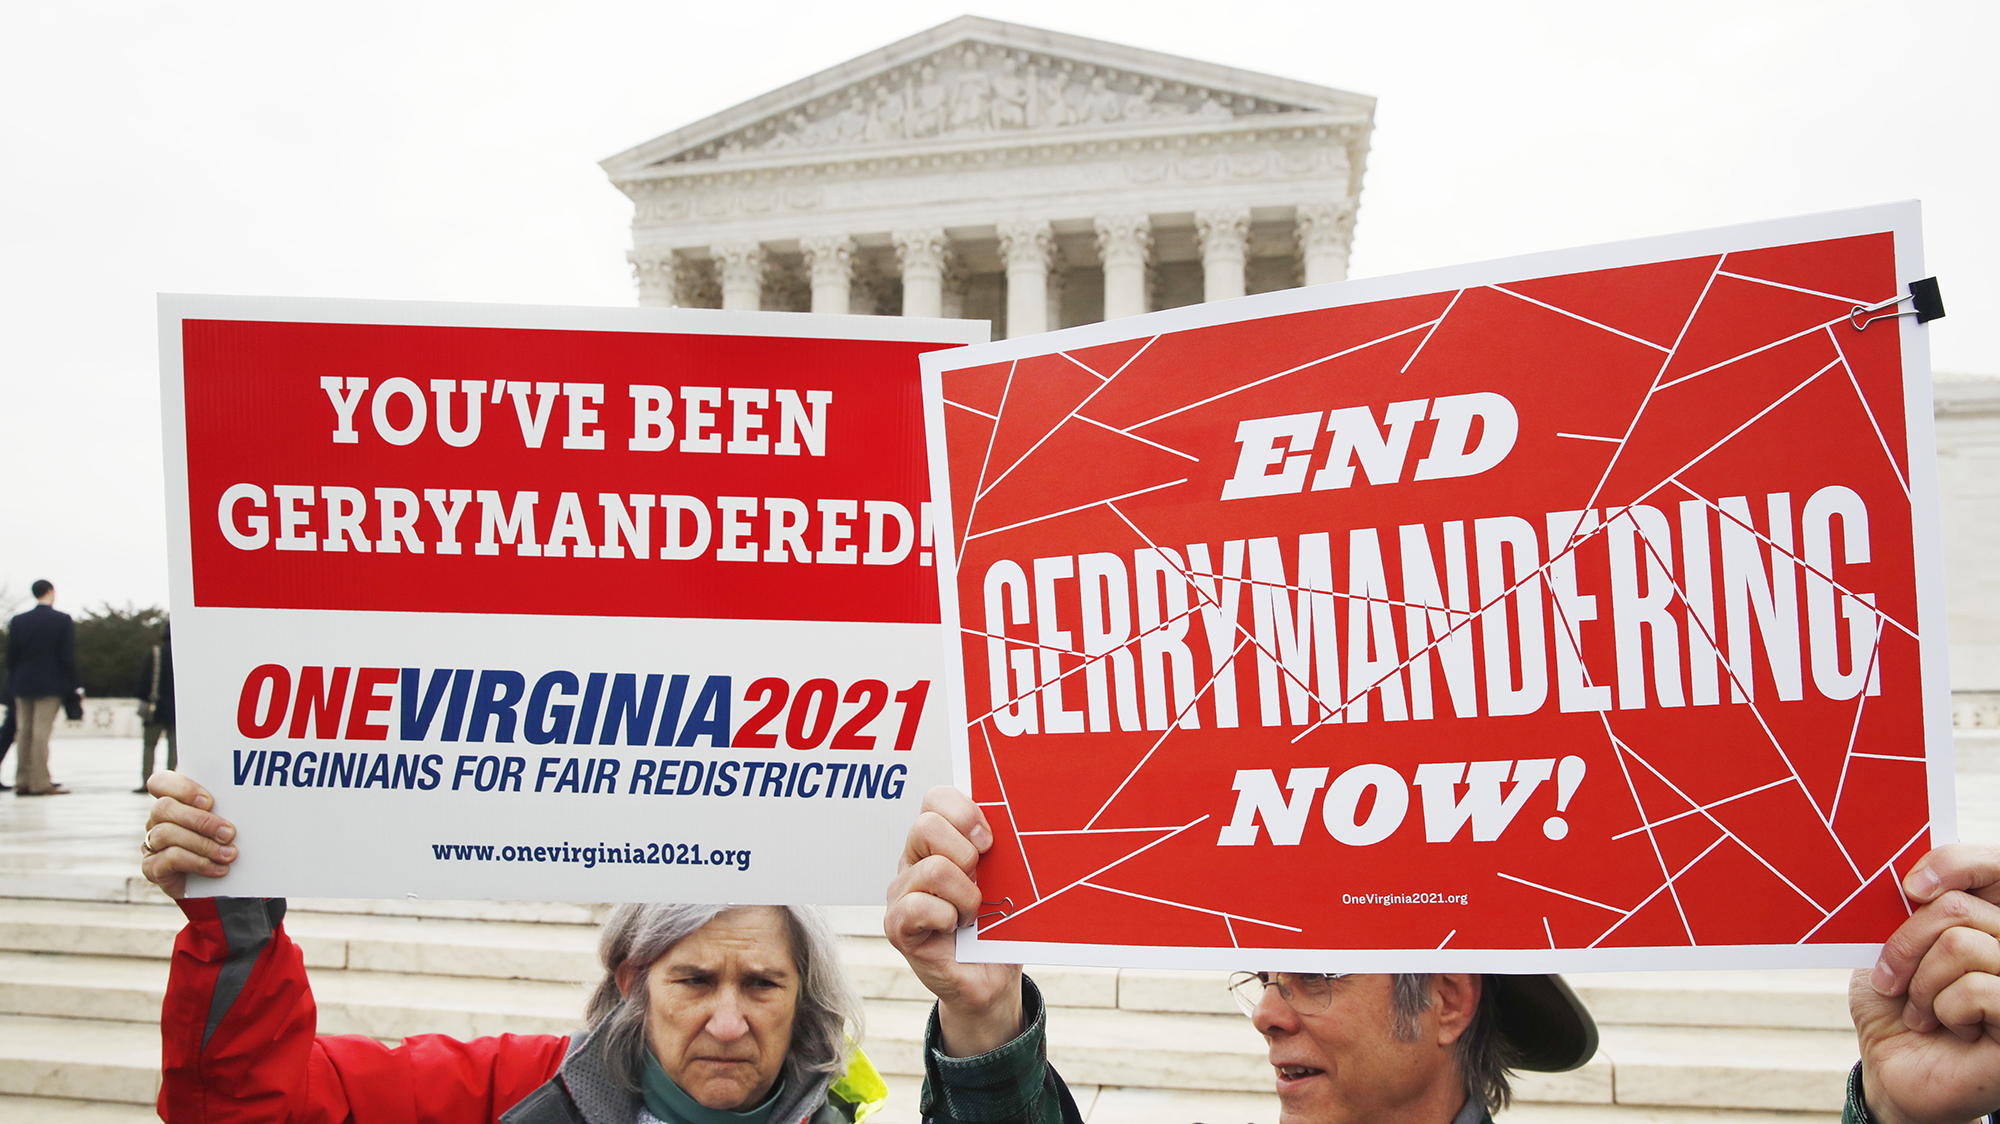 SCOTUS Punts on Two Gerrymandering Cases - Cortney O'Brien